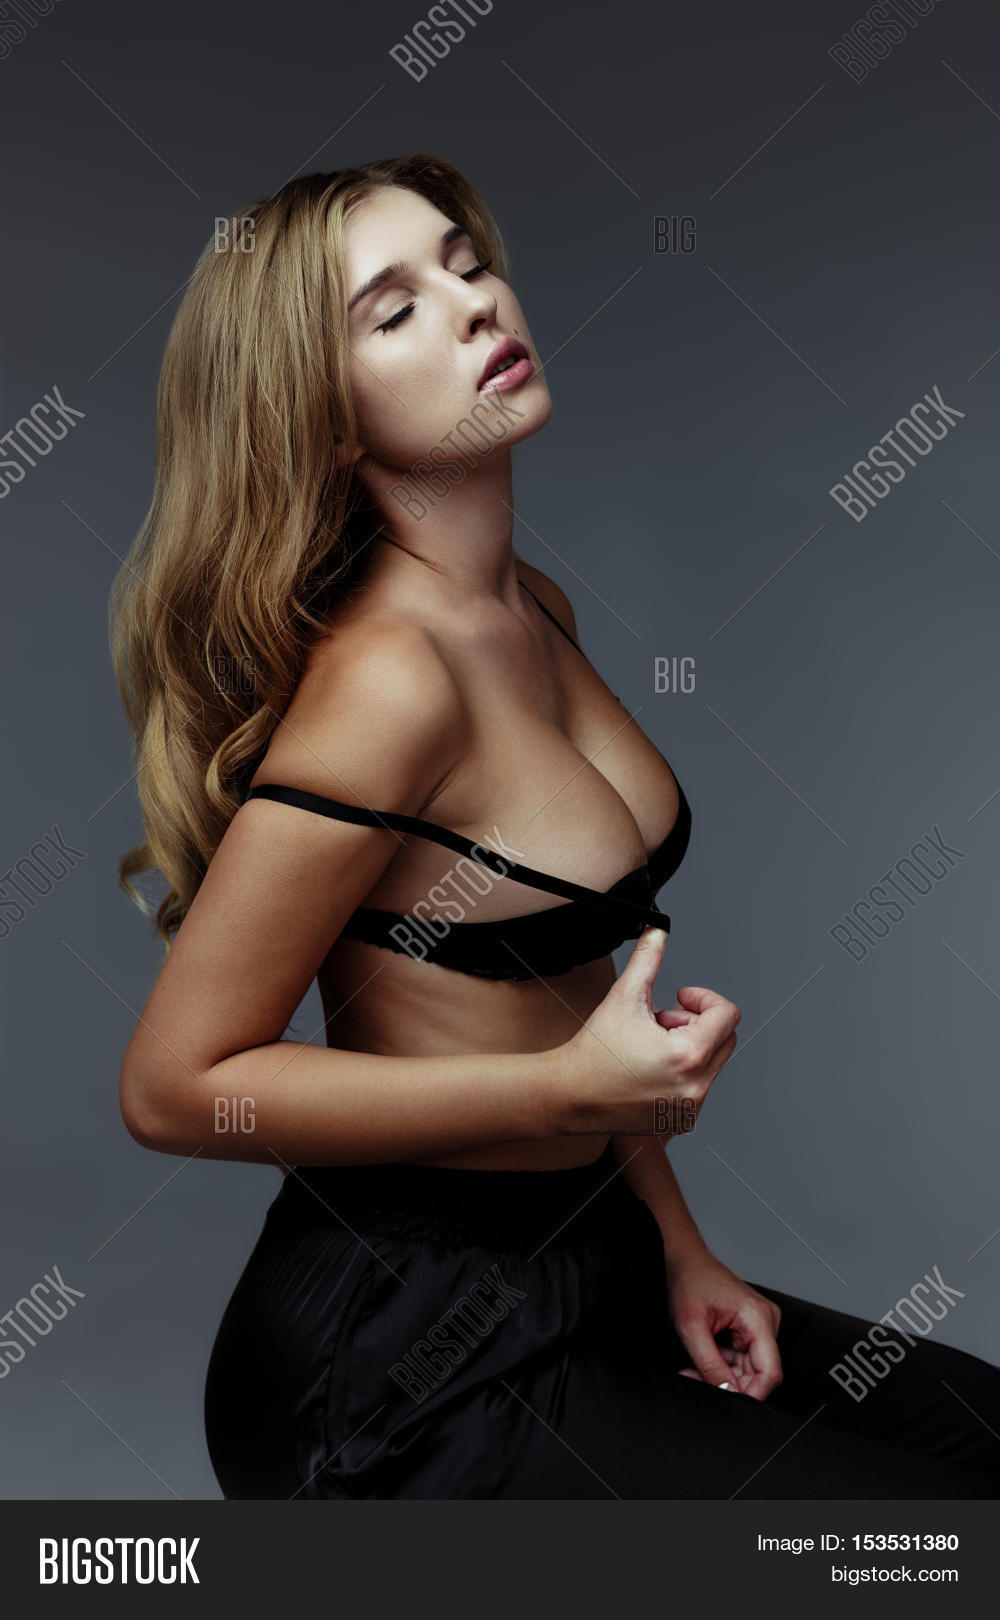 beautiful sexy blond woman big image & photo | bigstock